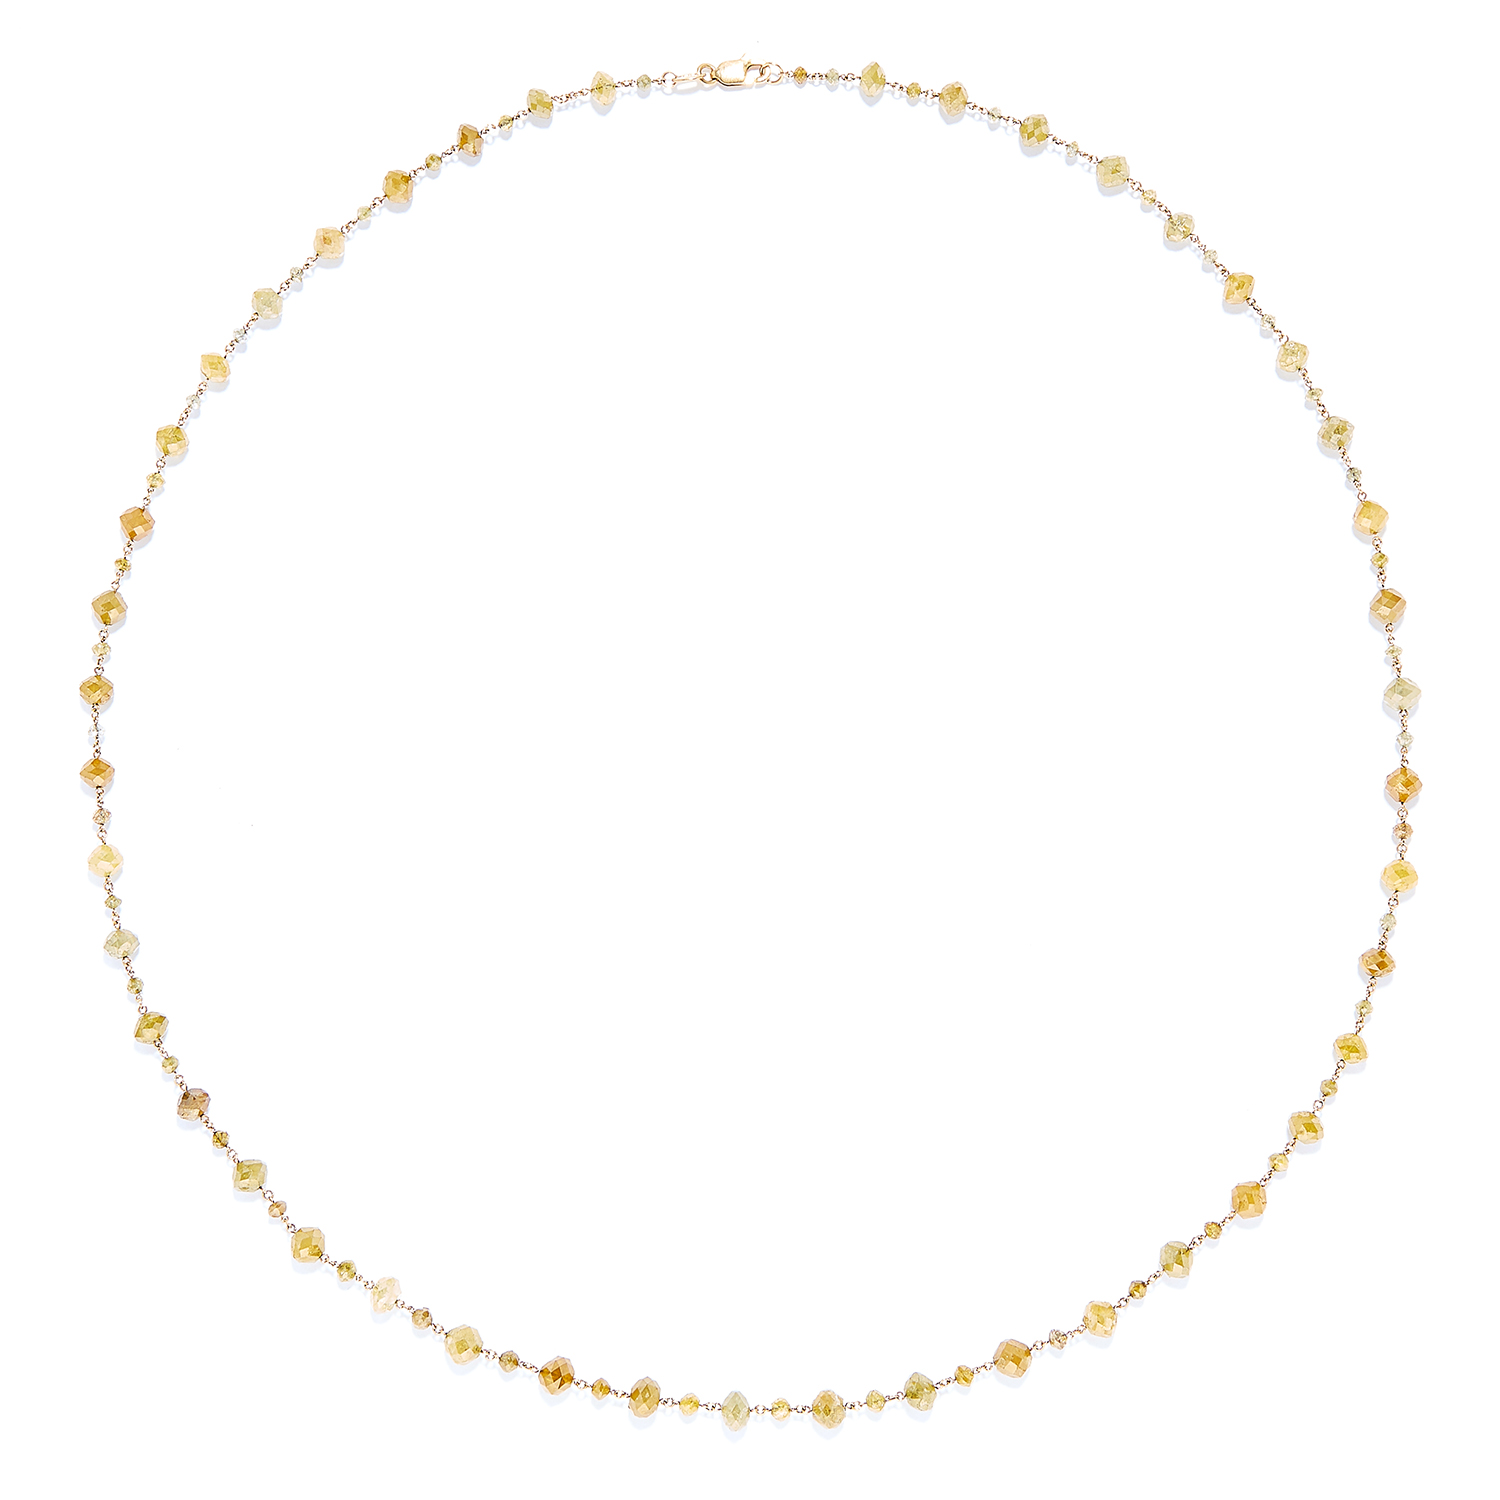 45.54 CARAT FANCY YELLOW DIAMOND BEAD NECKLACE, in 18ct yellow gold, comprising of a single row of